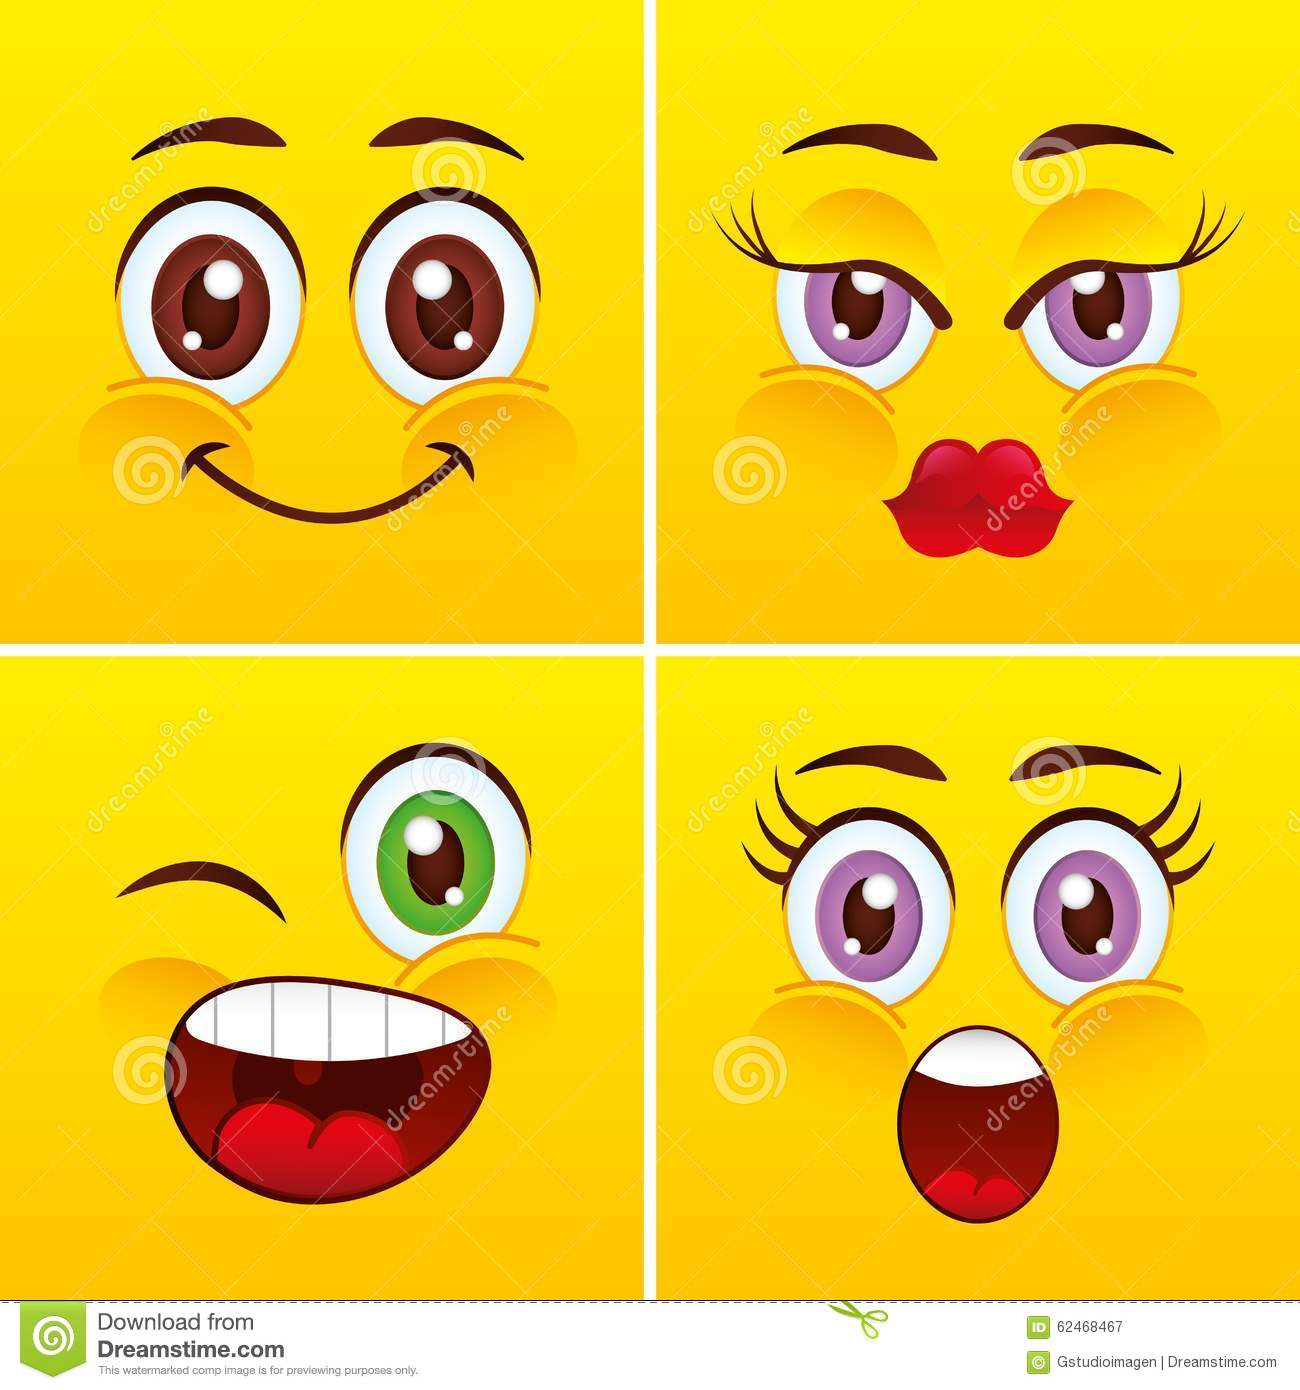 Smiley Faces Design Stock Vector. Illustration Of Smile